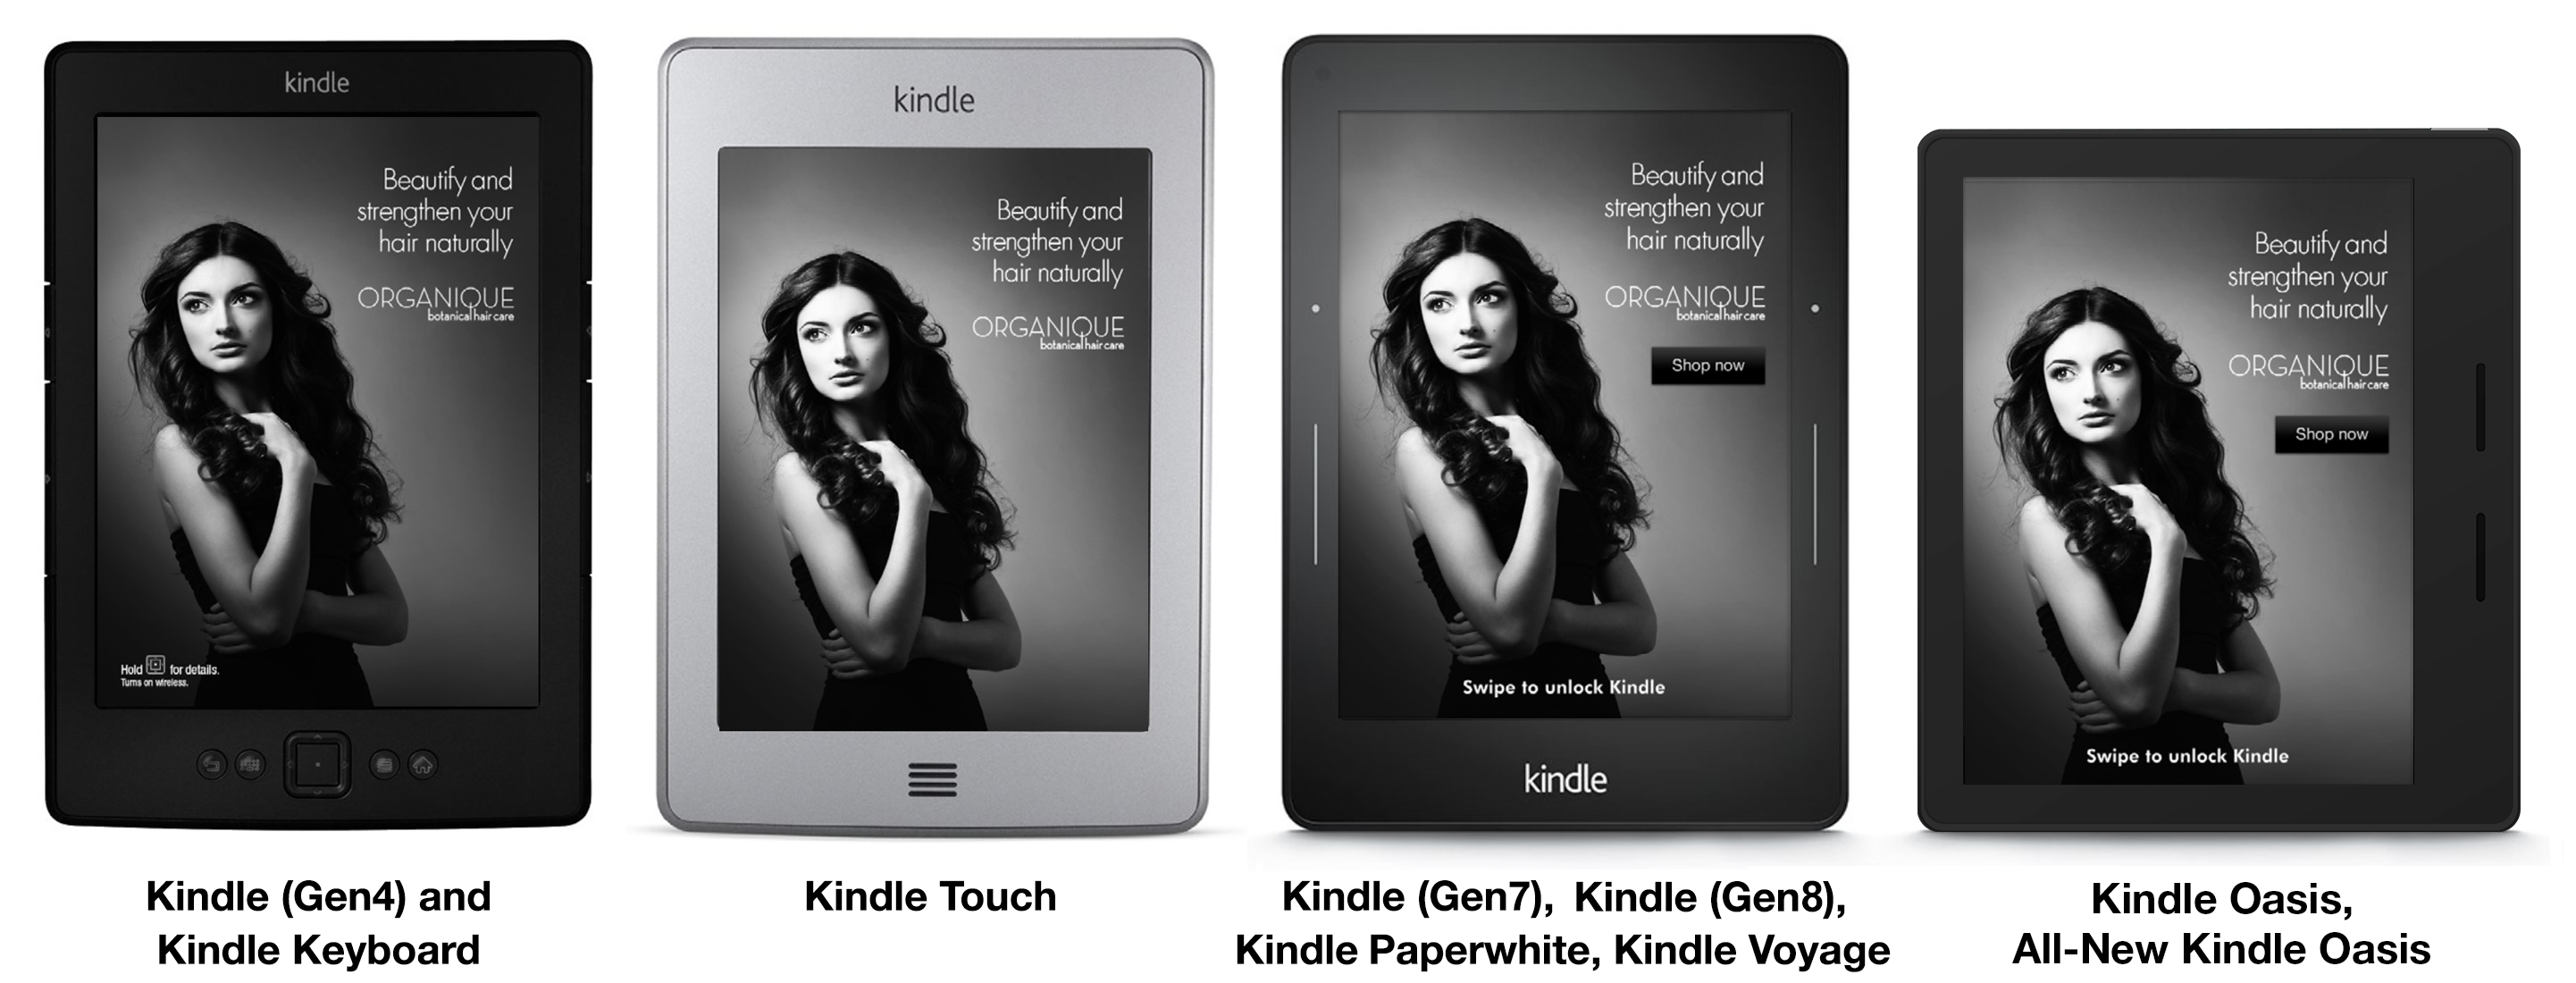 Kindle Screen Savers Examples